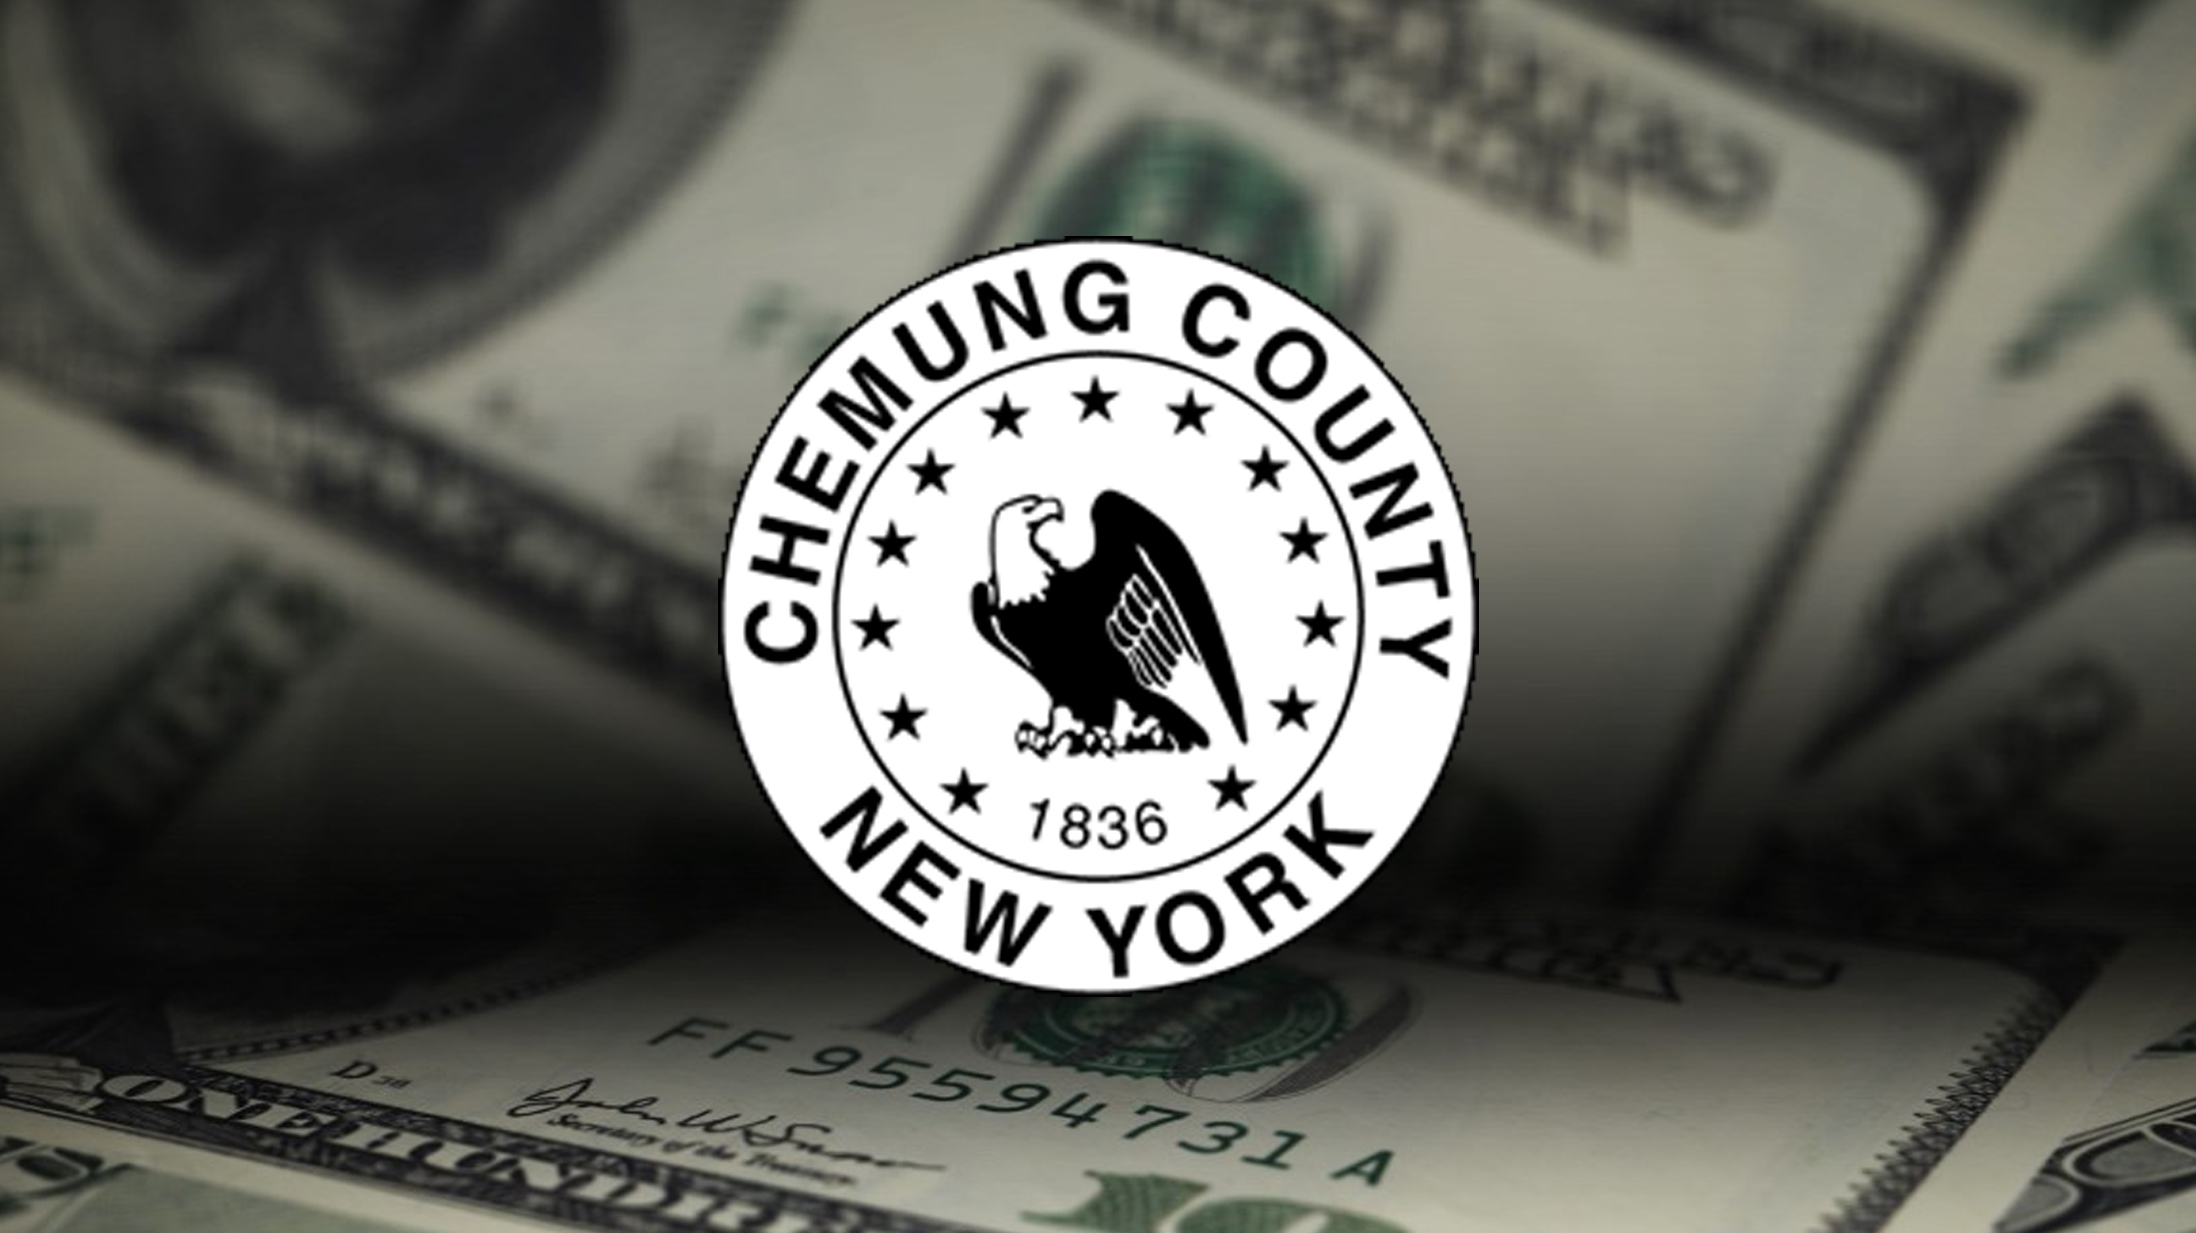 Chemung County Money pic FOR WEB_1481342044896.jpg